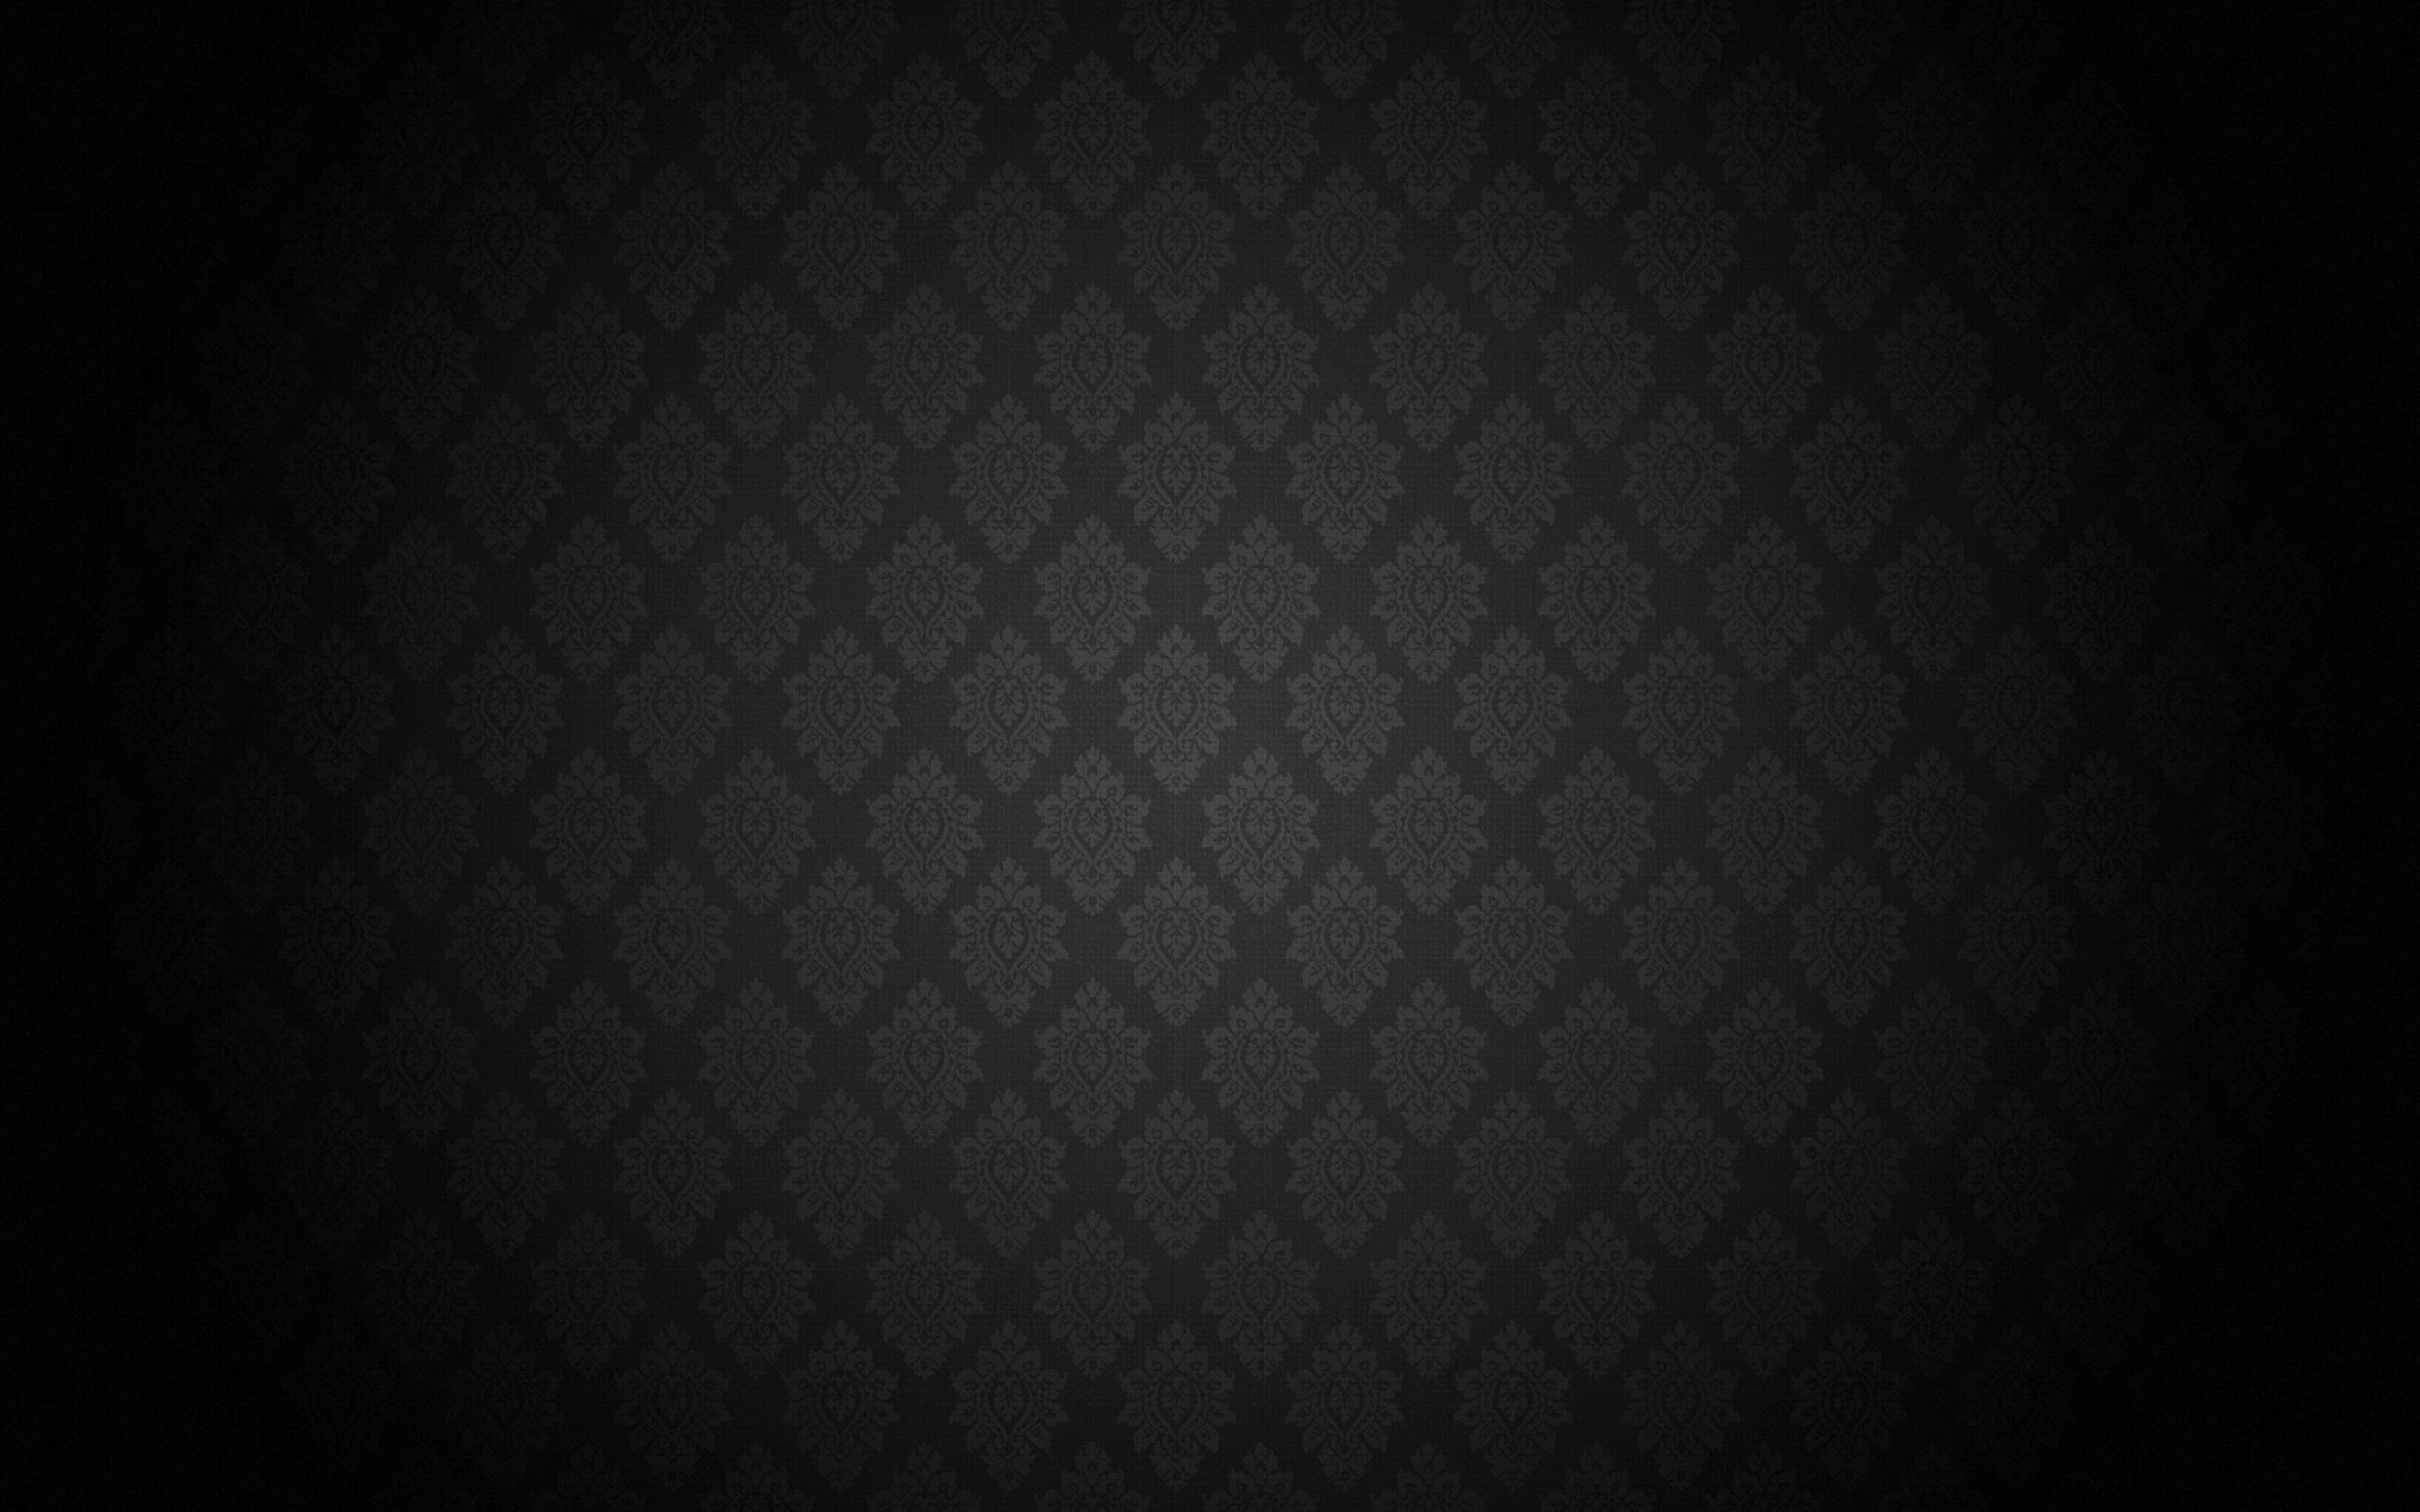 Black and White Pattern Background HD wallpaper background